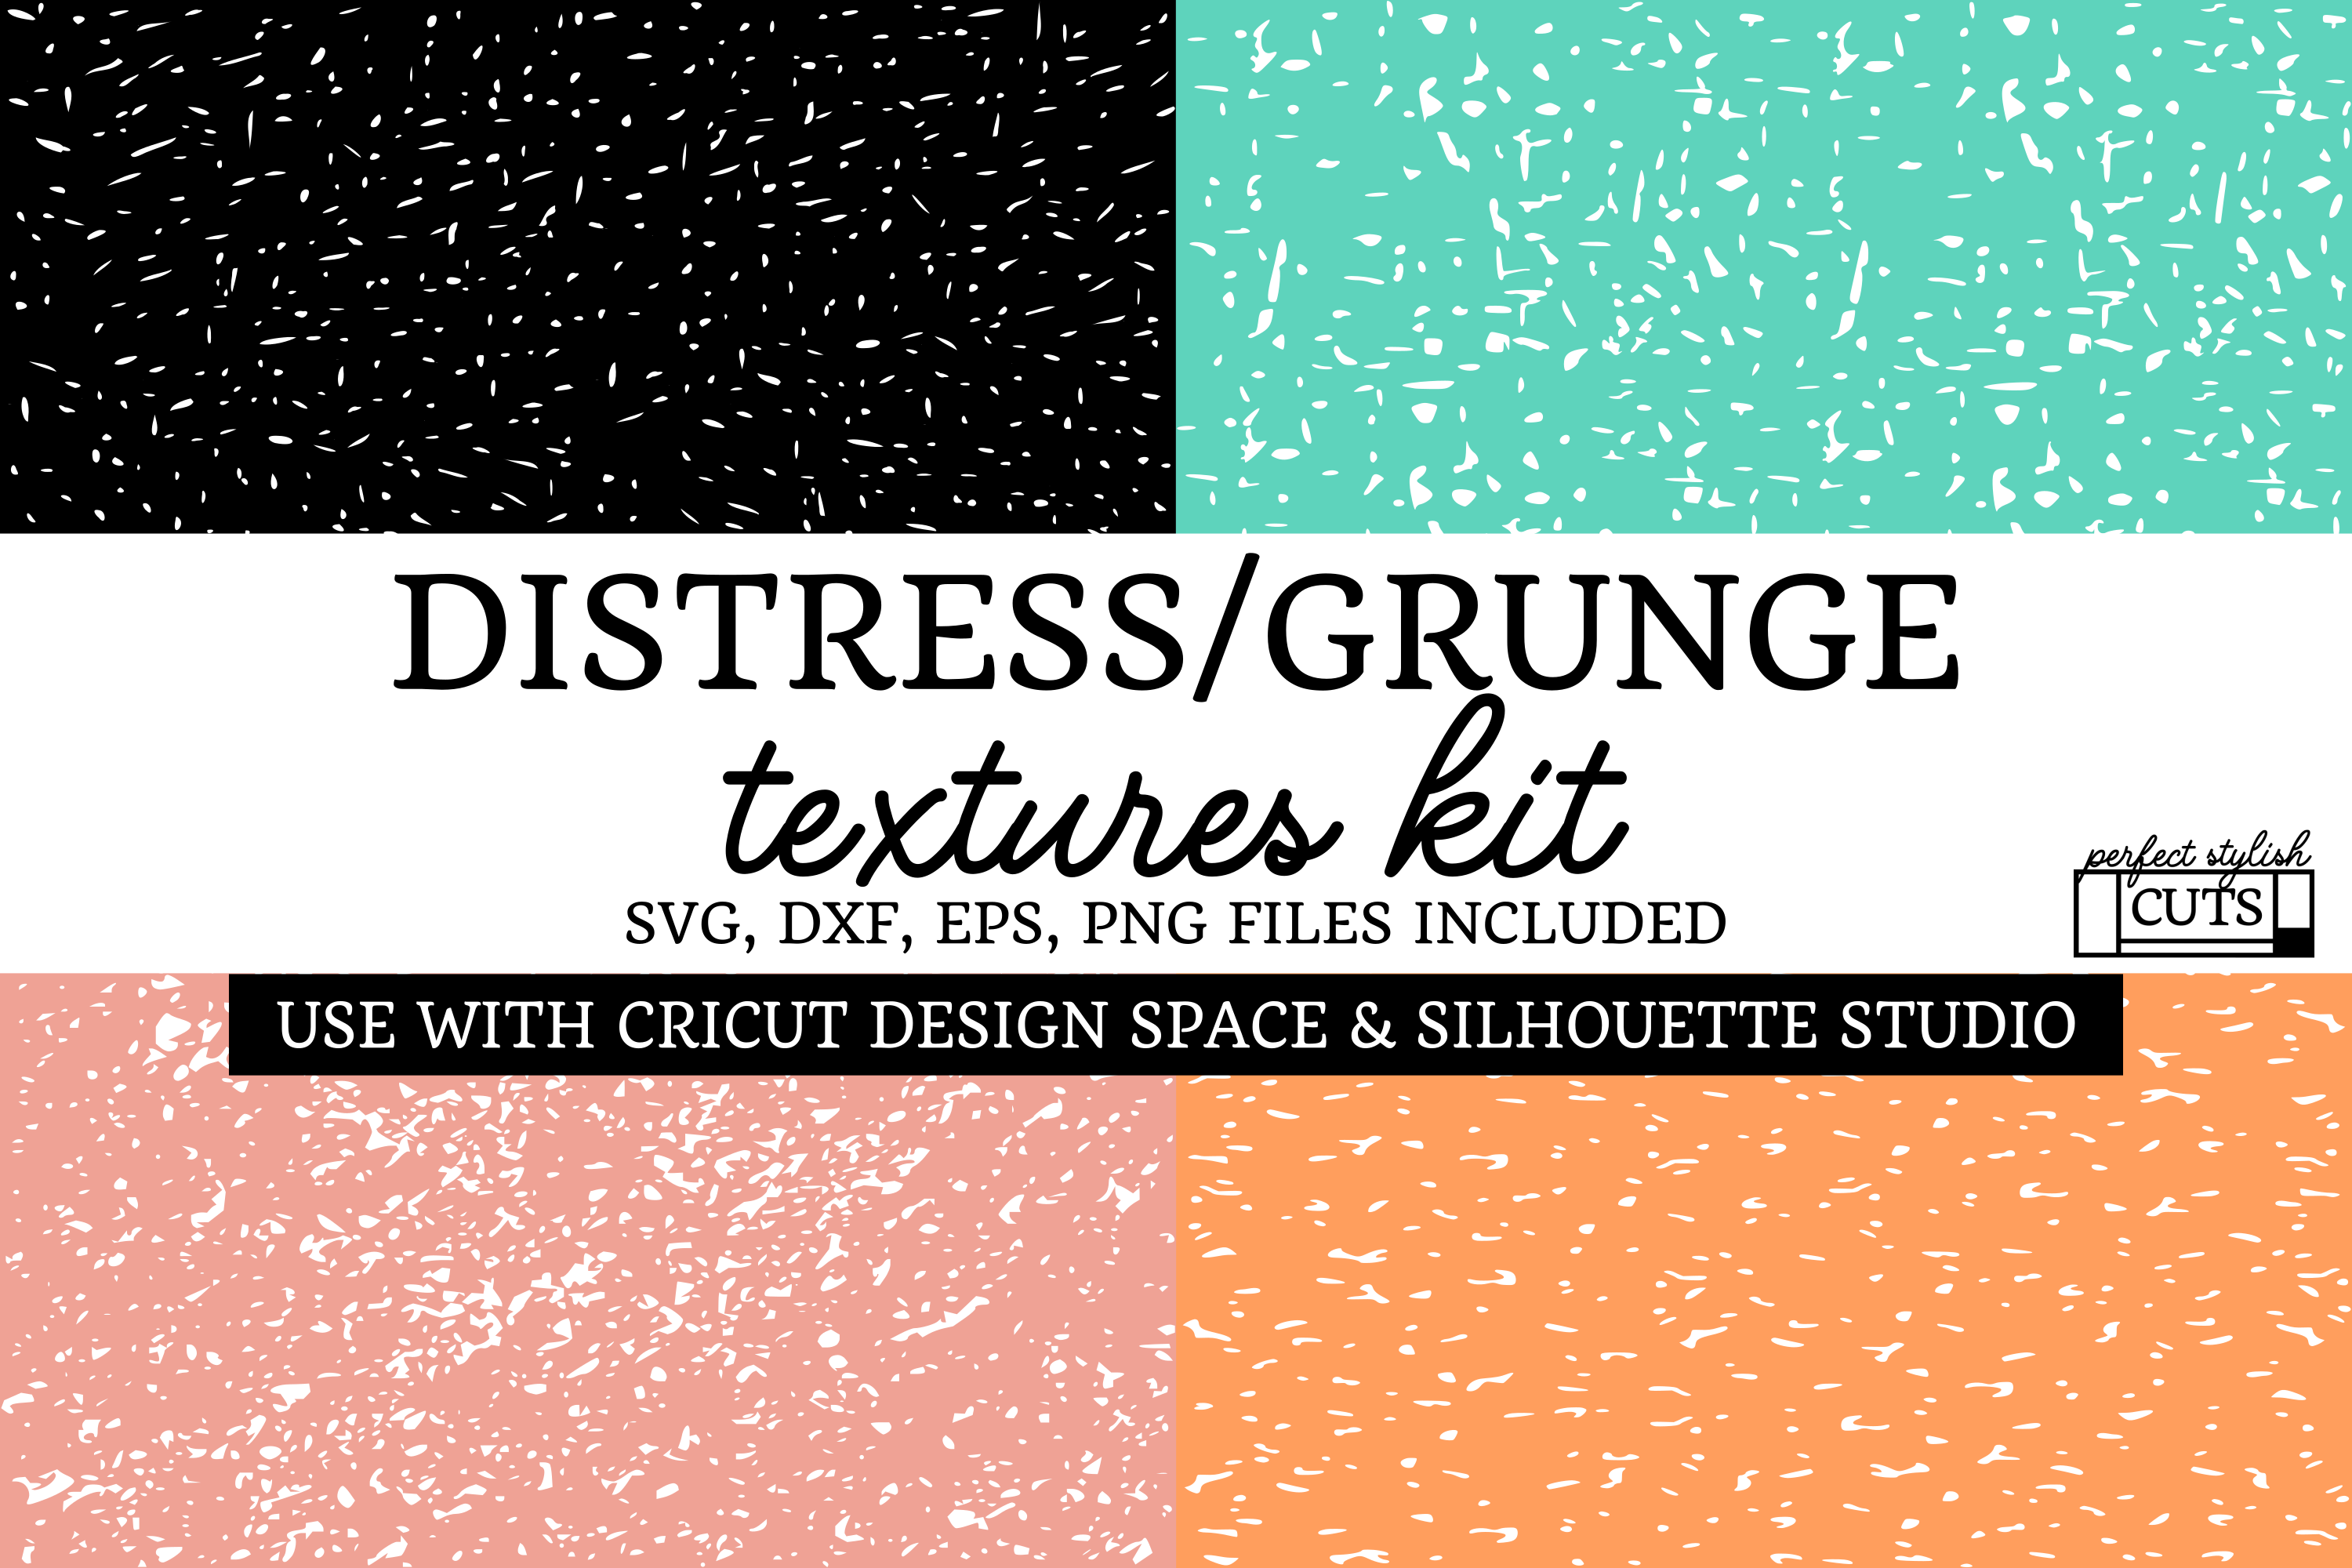 Grunge Textures Bundle, Distressed SVG Textures Kit example image 1